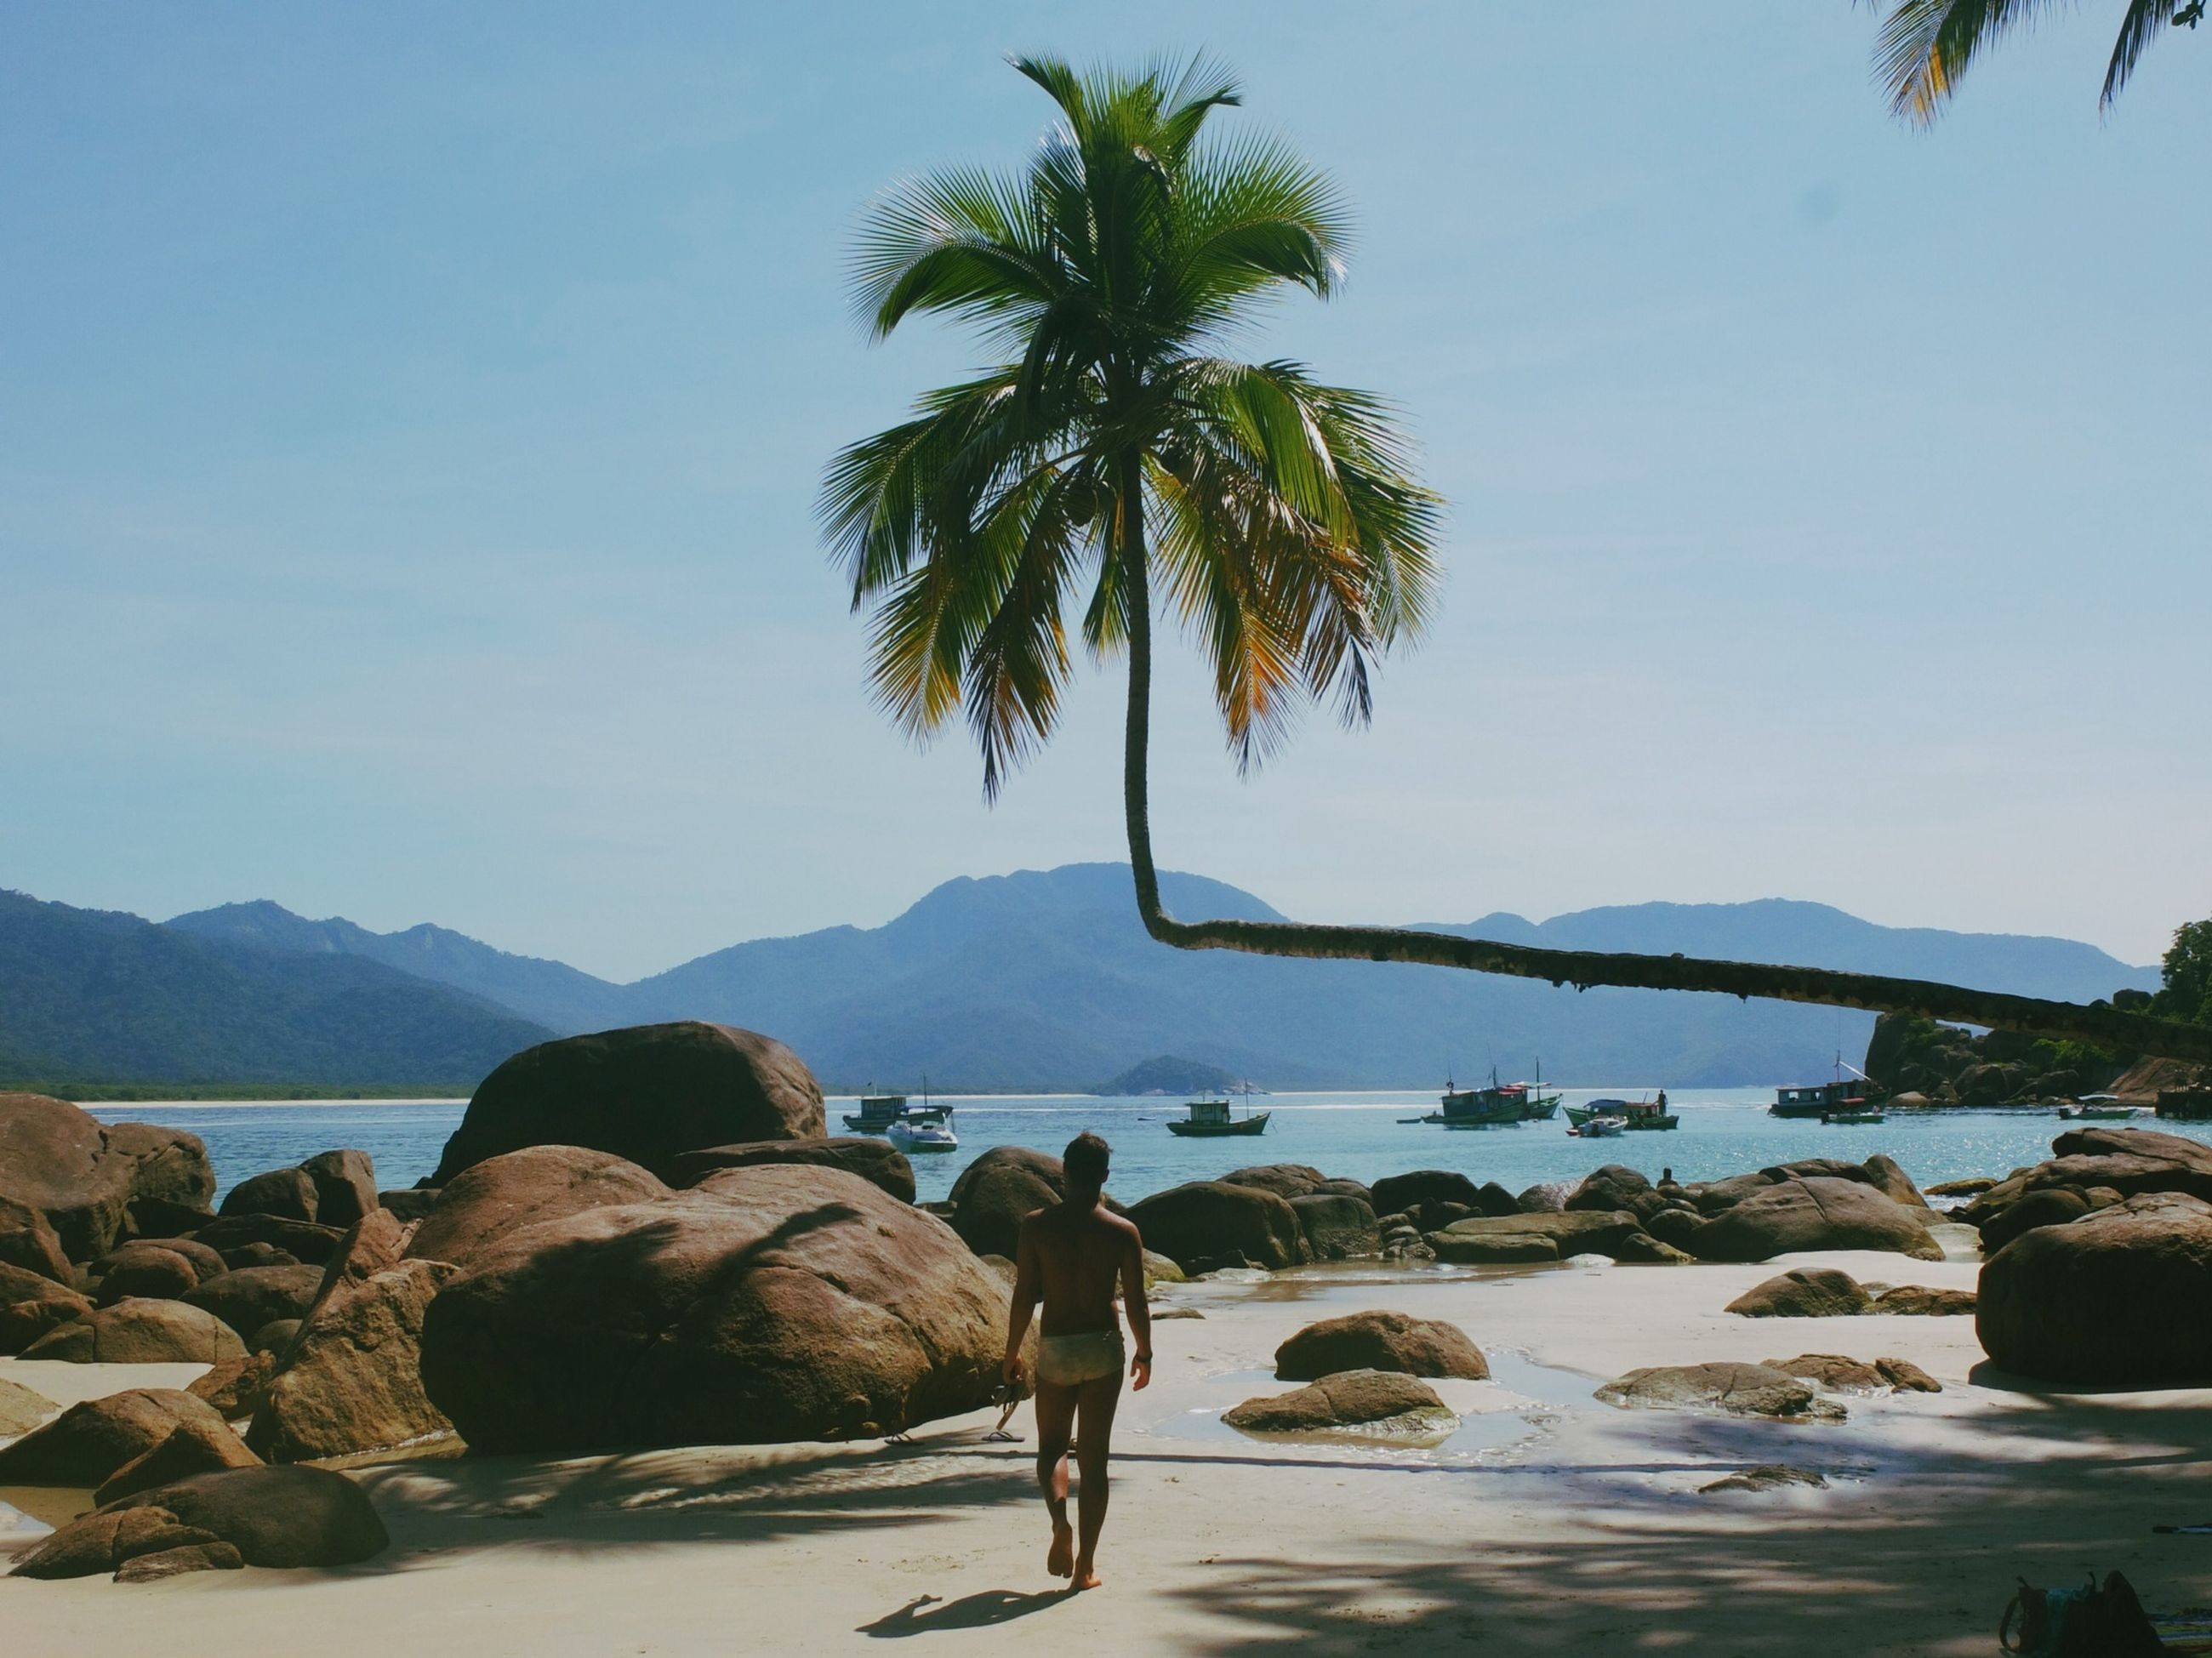 clear sky, water, mountain, tranquil scene, tranquility, copy space, tree, scenics, beauty in nature, nature, beach, rock - object, palm tree, sand, sea, idyllic, shore, men